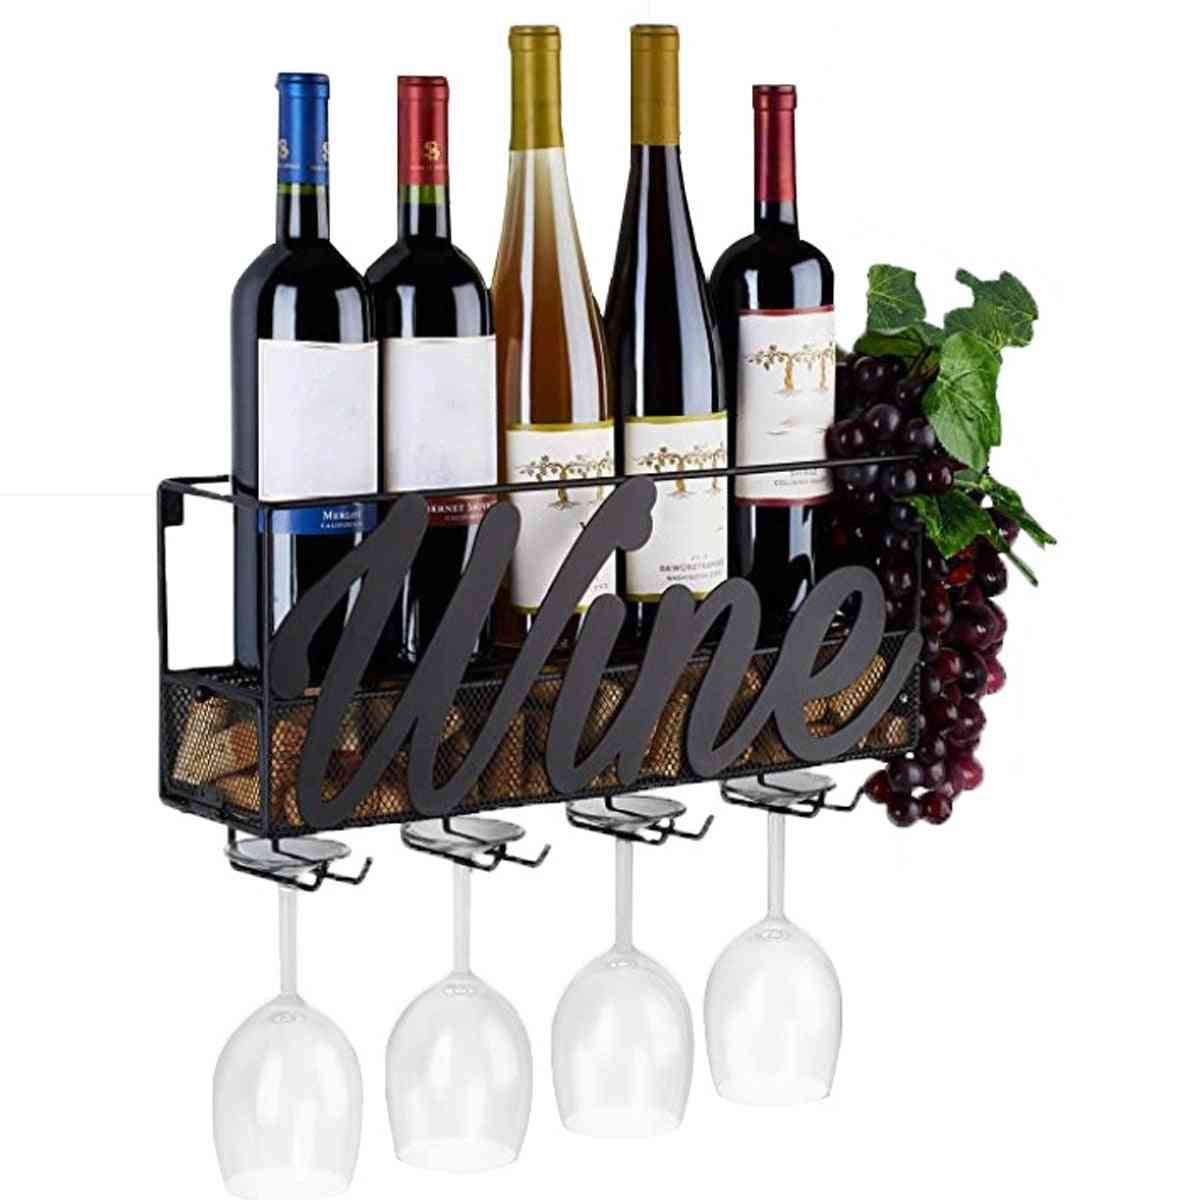 Wine Rack, Bottle Store, Wall Mounted Shelf With 4 Built-in Wine, Glass Holders